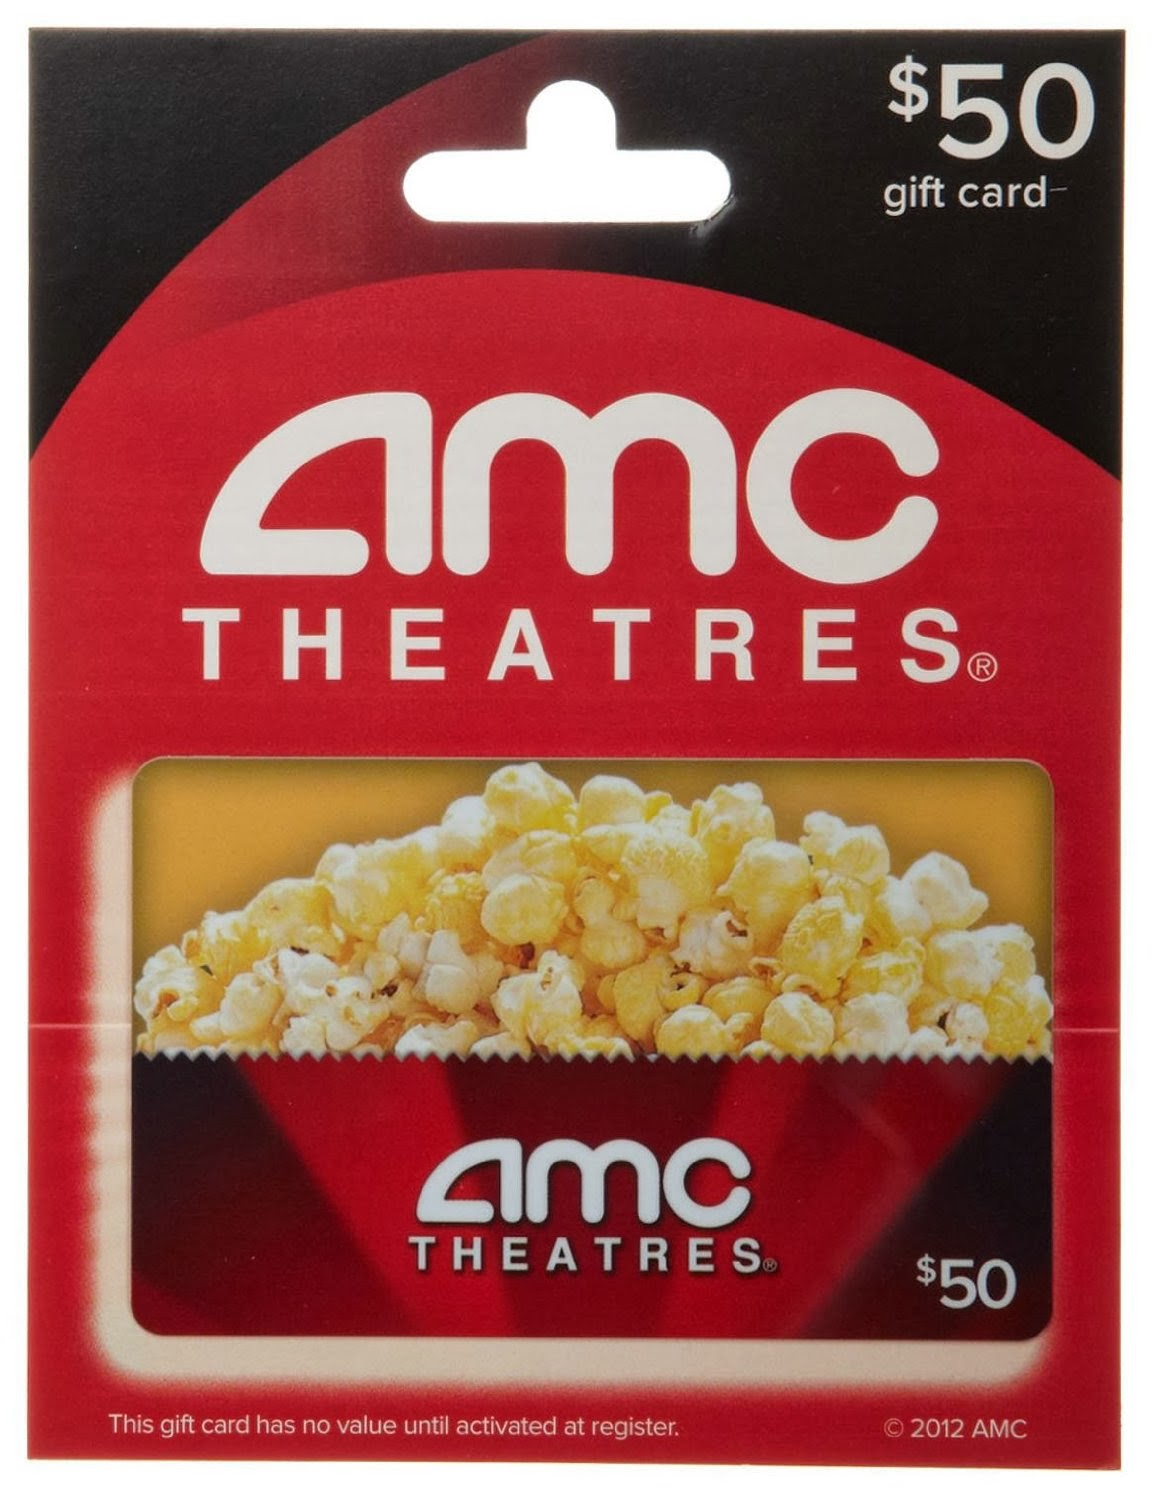 amc theatre gift card sasaki time giveaway amc theatres 50 gift card 9092